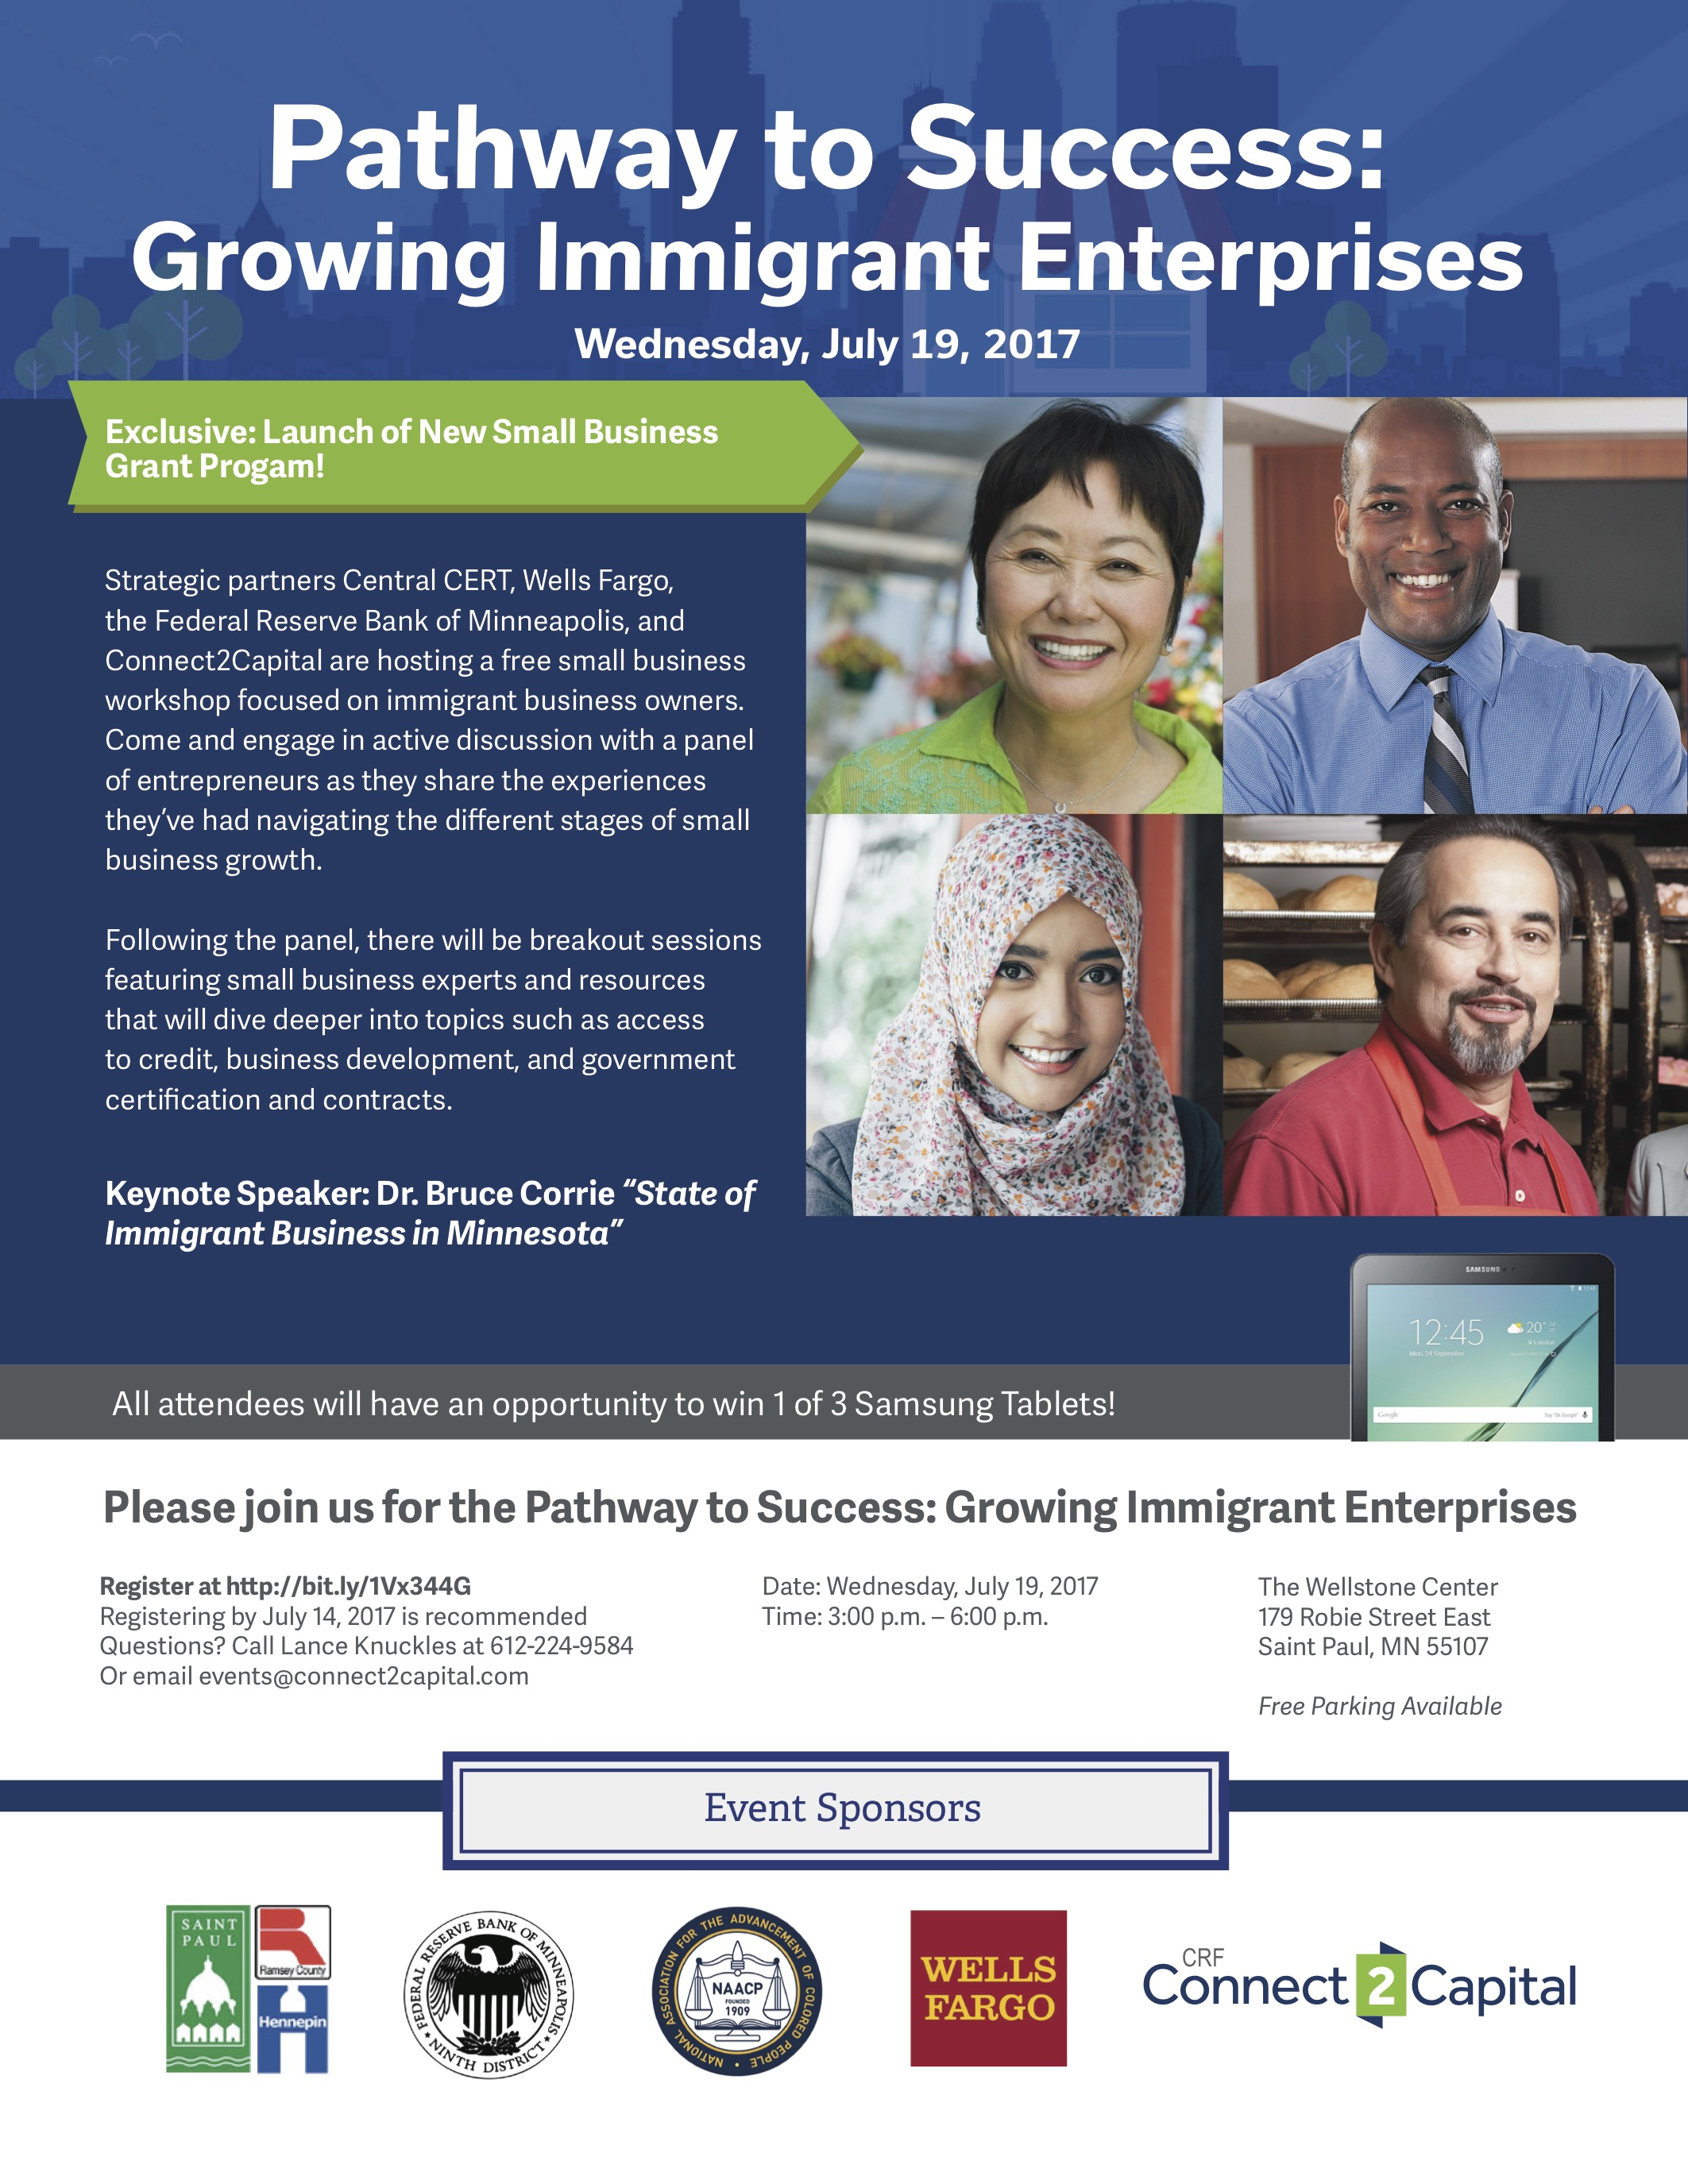 Pathway_to_Success-Event-Flyer-July-2017.jpg